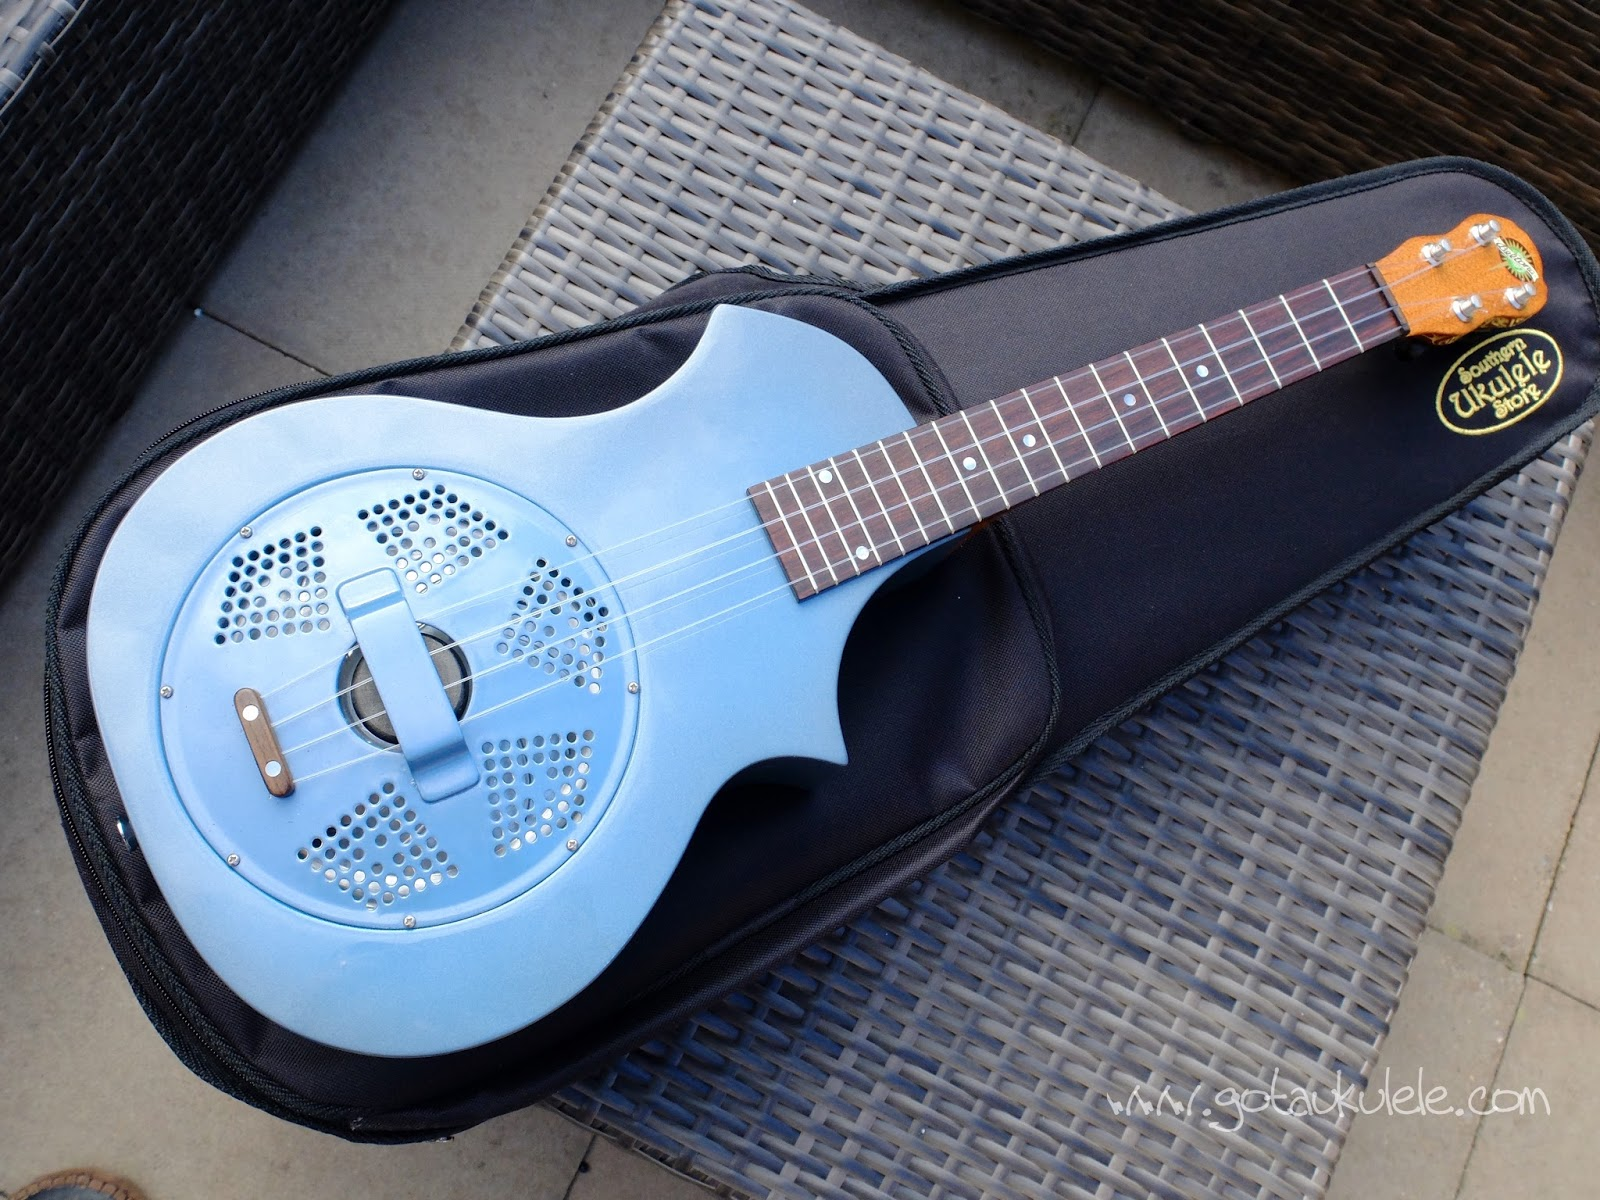 Beltona Style 2 Tenor Resonator Ukulele Review